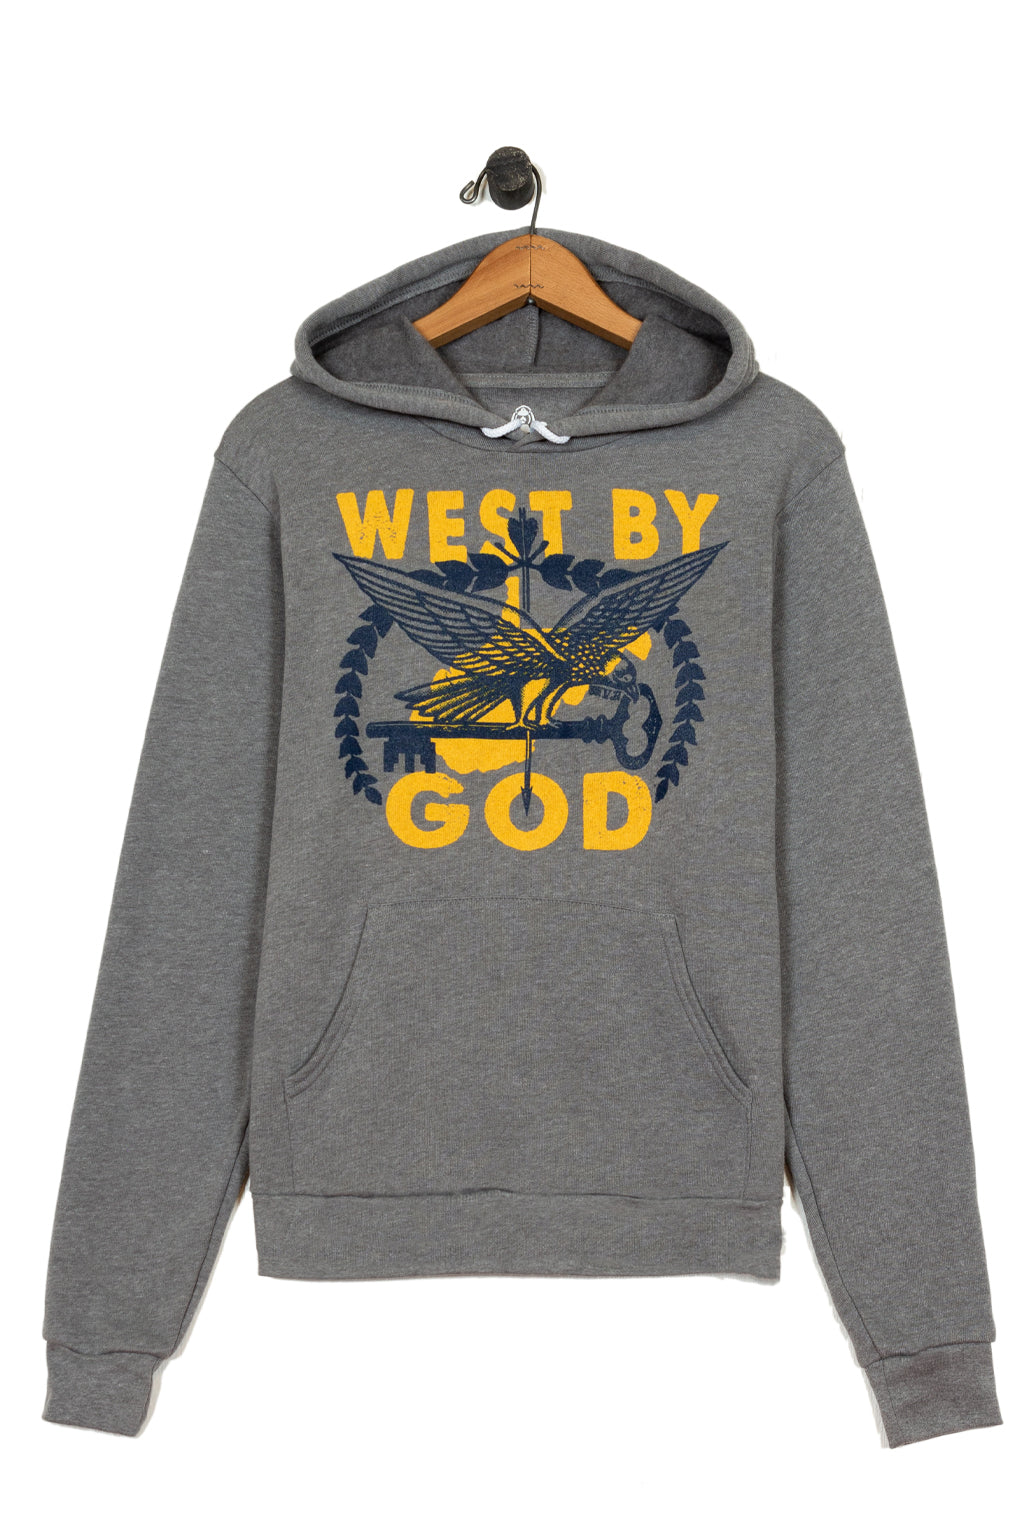 west by god pullover hoodie, final sale